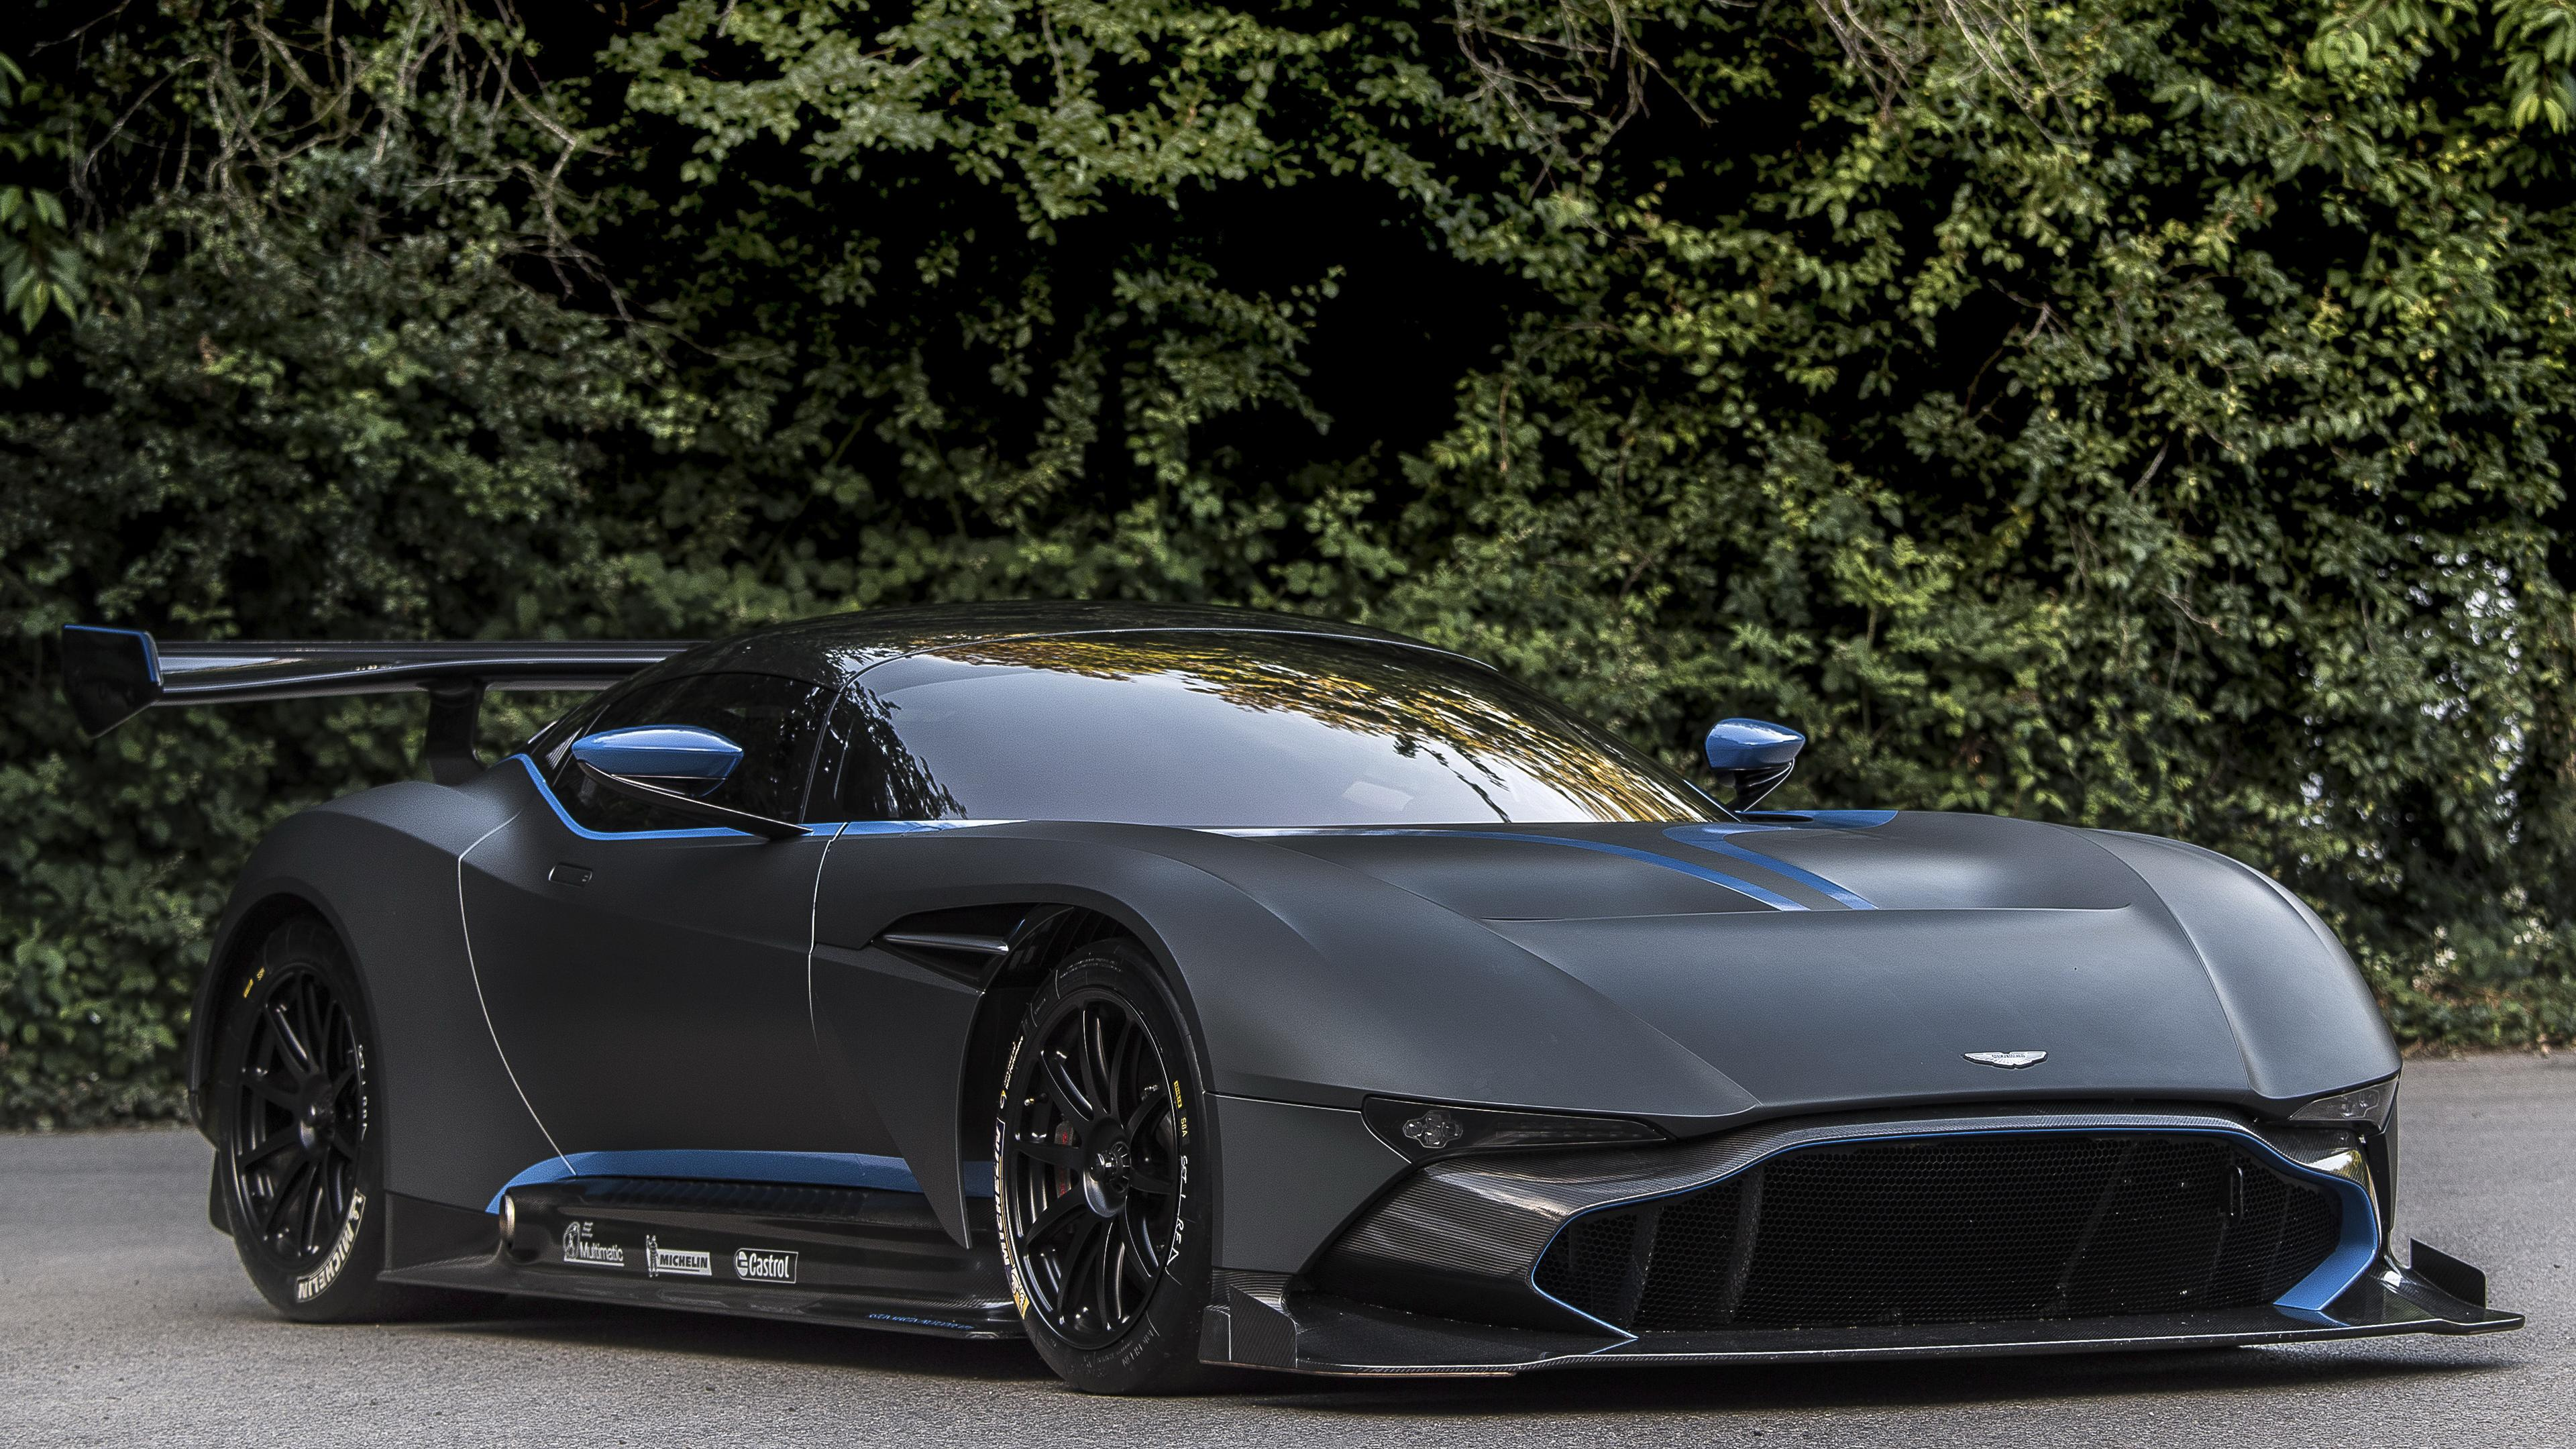 aston martin vulcan wallpapers wallpaper cave. Black Bedroom Furniture Sets. Home Design Ideas